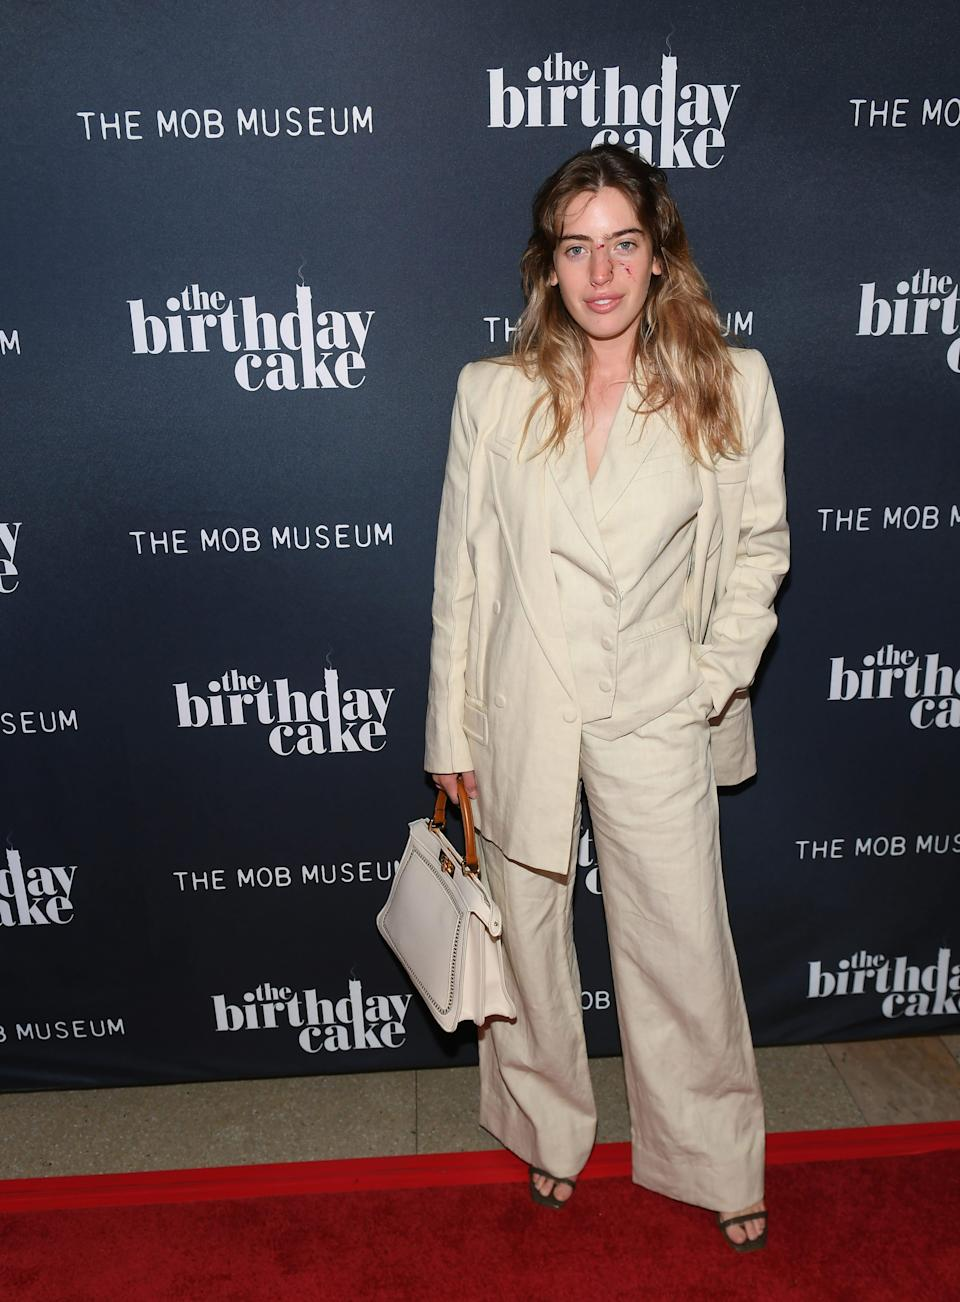 """Actress Clara McGregor attends the world premiere of """"The Birthday Cake"""" at The Mob Museum on June 11, 2021 in Las Vegas, Nevada."""